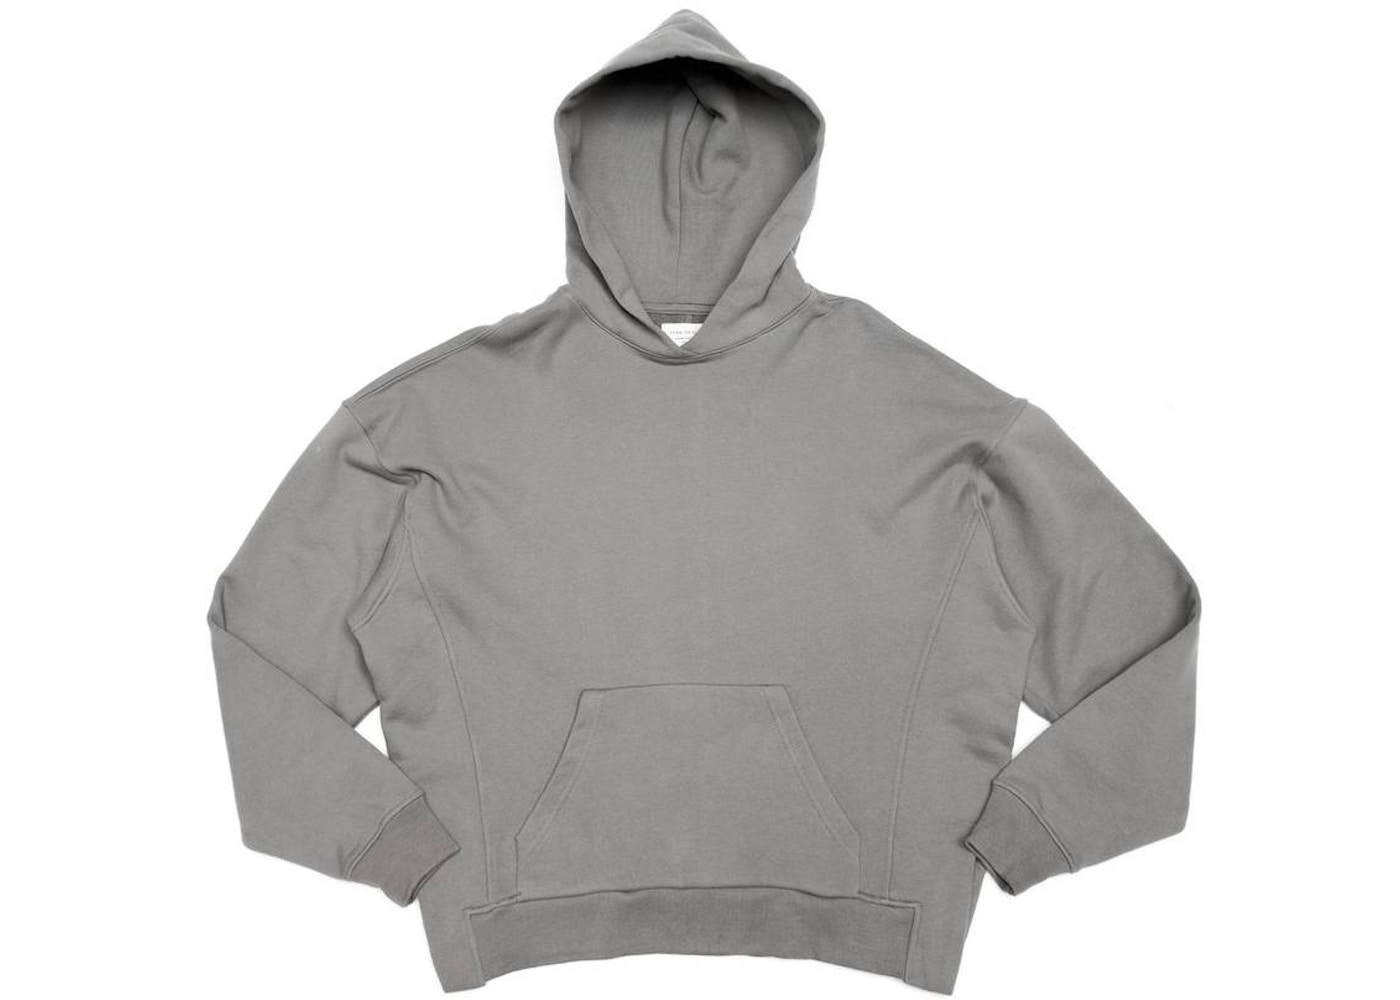 cb9e713a9ebd Sell. or Ask. Size L. View All Bids. FEAR OF GOD Everyday Hoodie ...